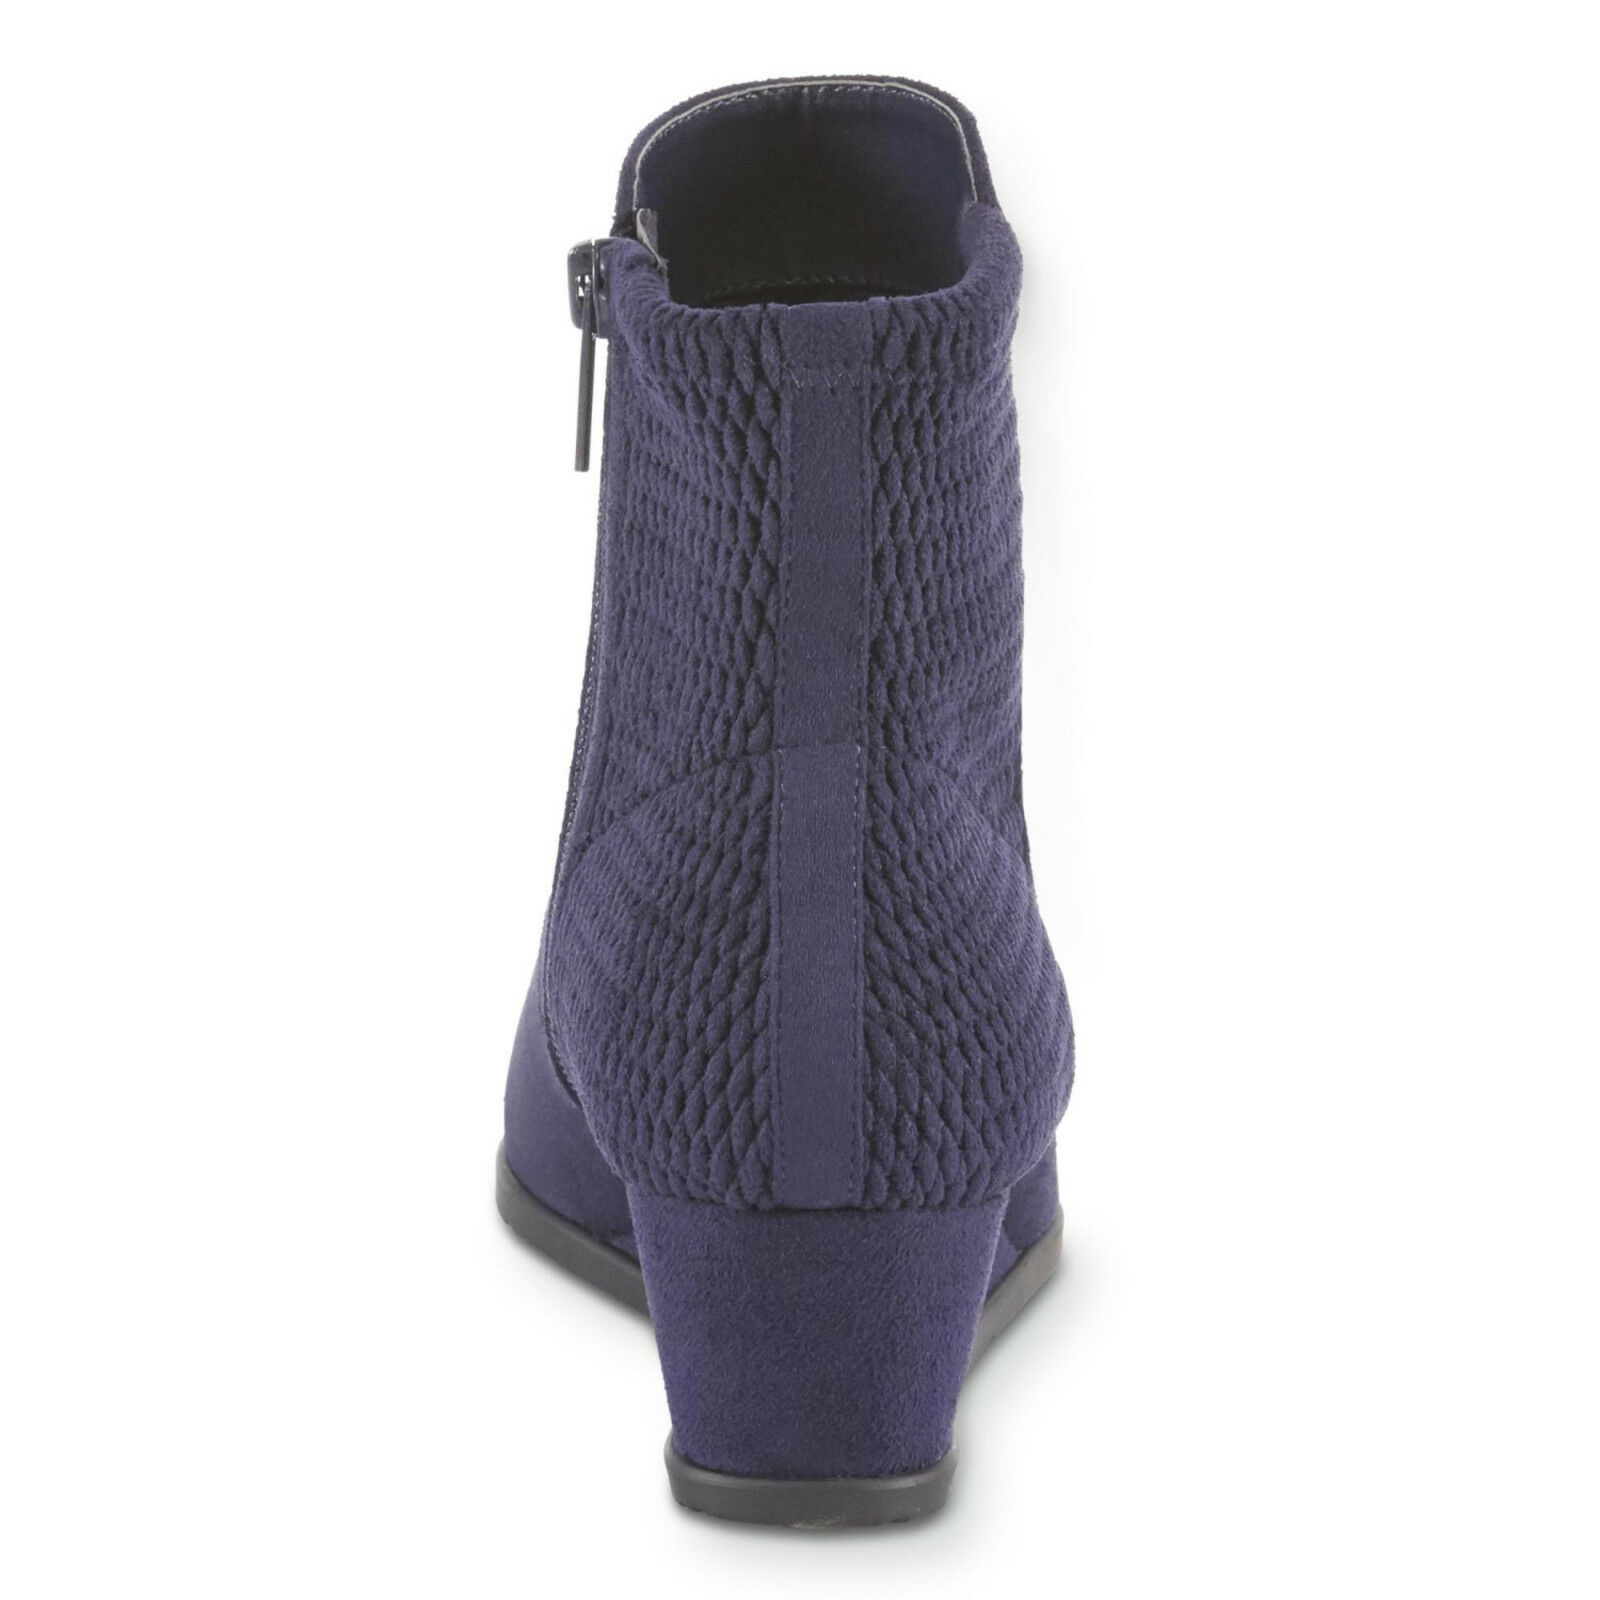 Laura Scott Women's Emerson Ankle Bootie - Navy size size size 5.5M BRAND NEW 9f0f86